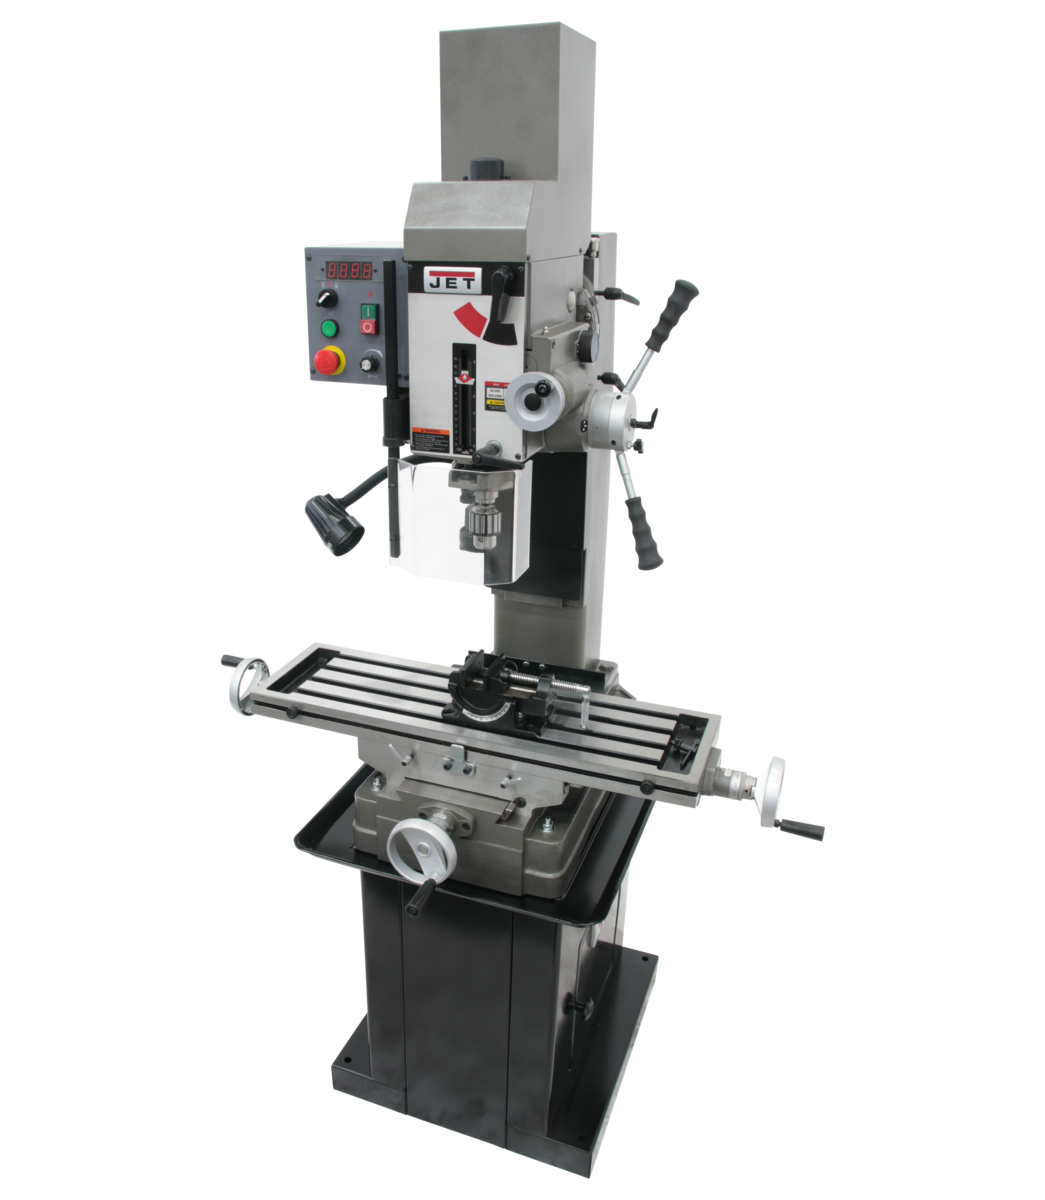 JMD-45VSPFT Variable Speed Geared Head Square Column Mill/Drill with Power Downfeed & Newall DP500 2-Axis DRO